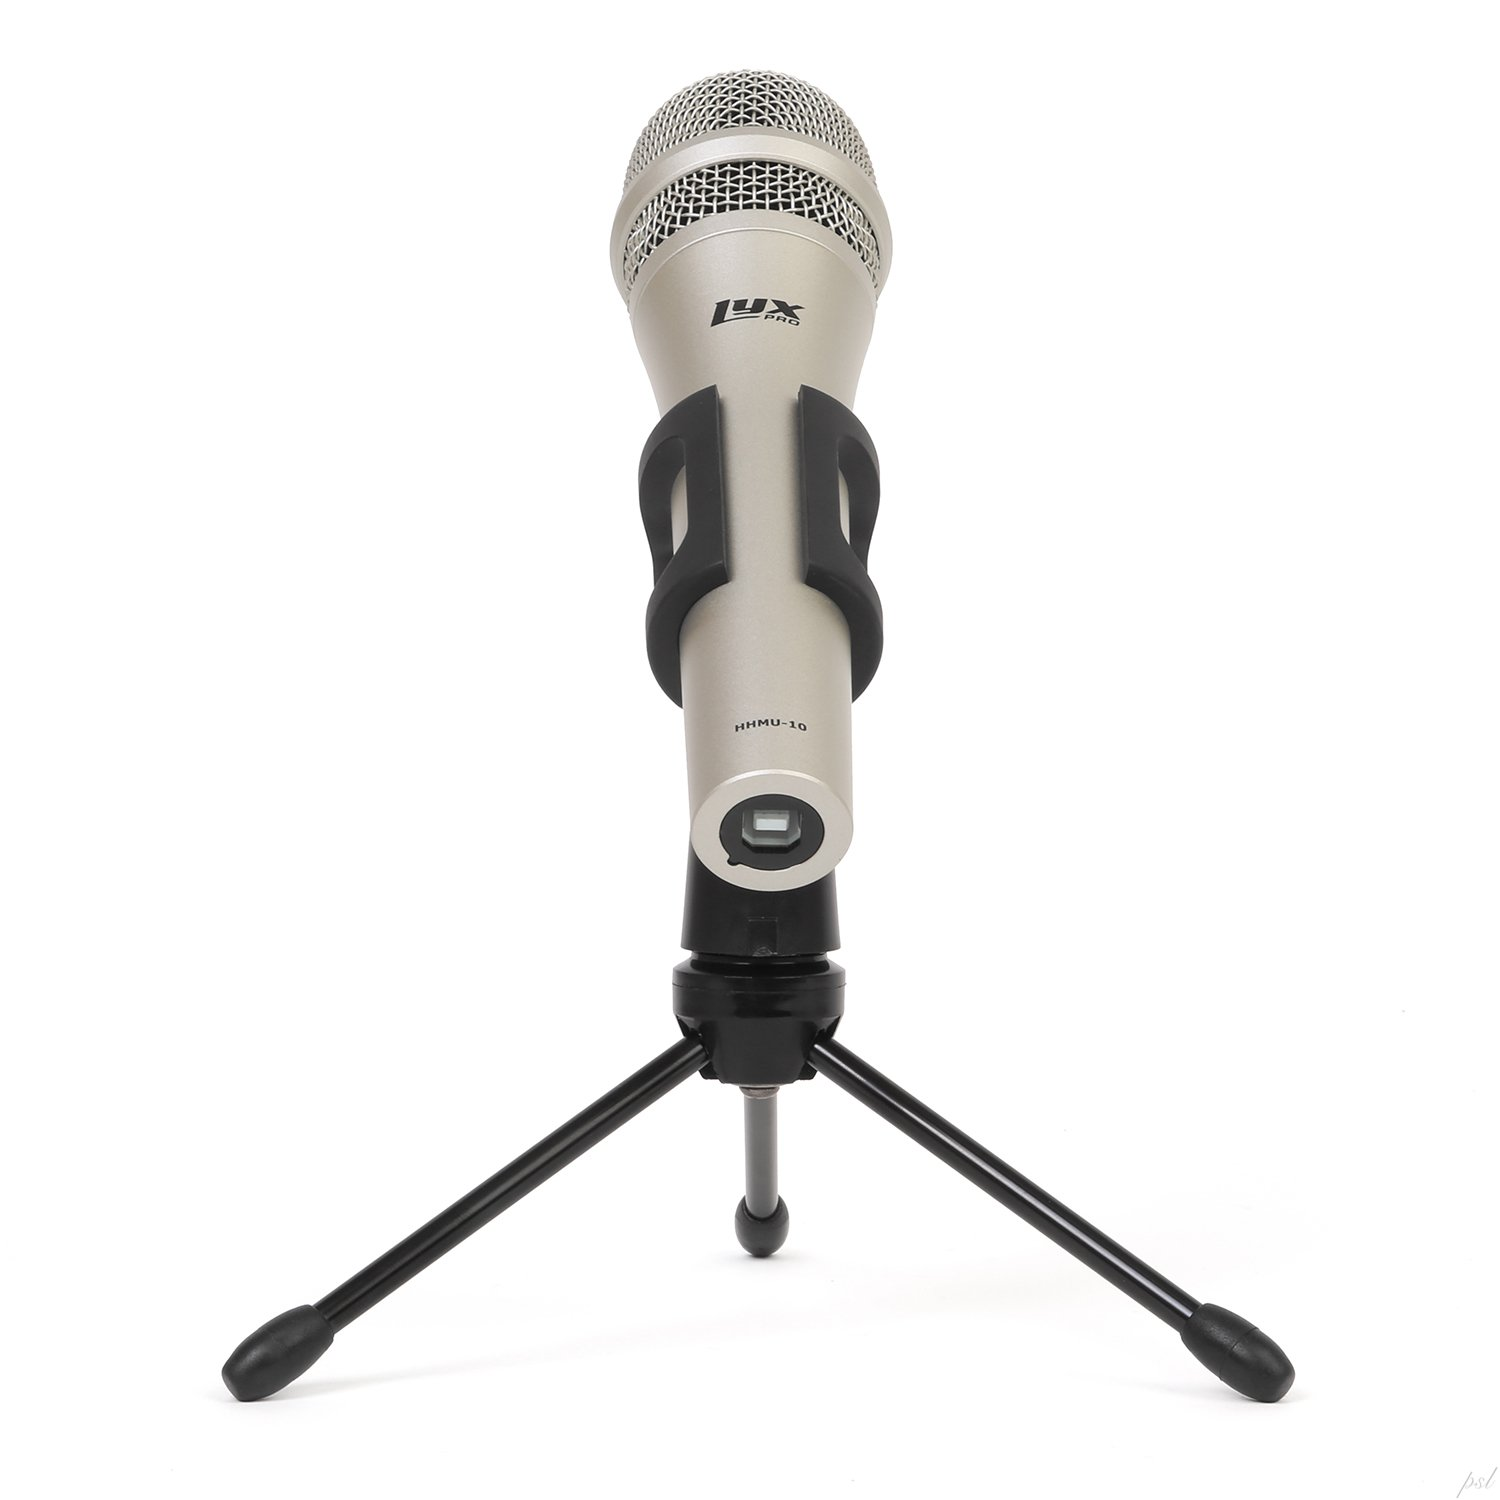 Dynamic Microphone For Home Recording : lyxpro hhmu 10 cardioid dynamic usb microphone for home recording voice over podcasting ~ Russianpoet.info Haus und Dekorationen